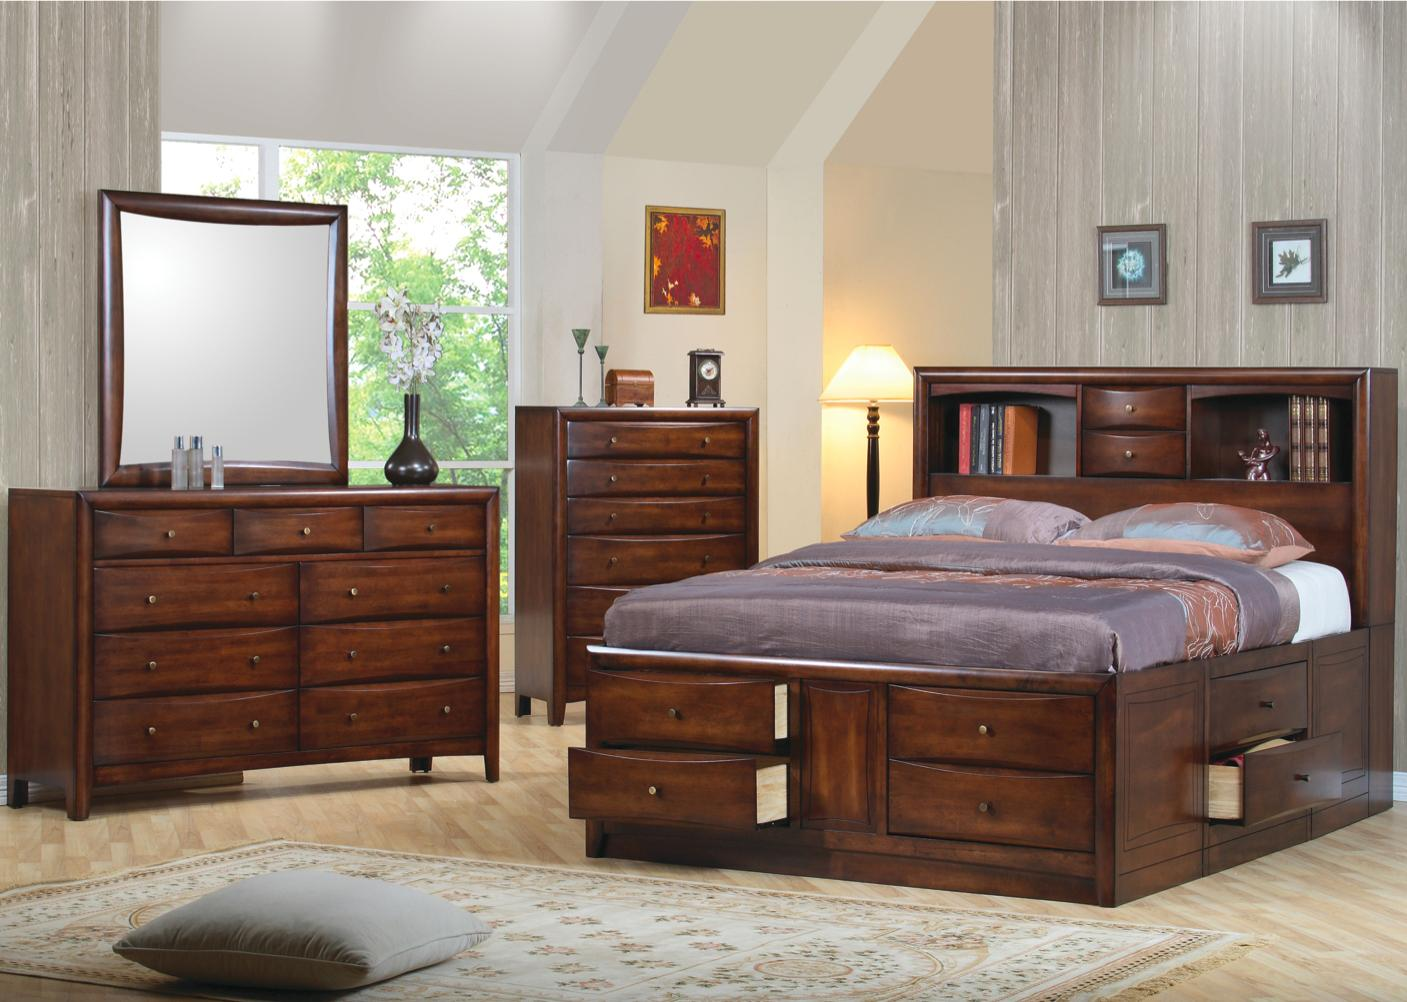 Coaster Hillary and Scottsdale King Bedroom Group - Item Number: 200600+200640 K Bedroom Group 1